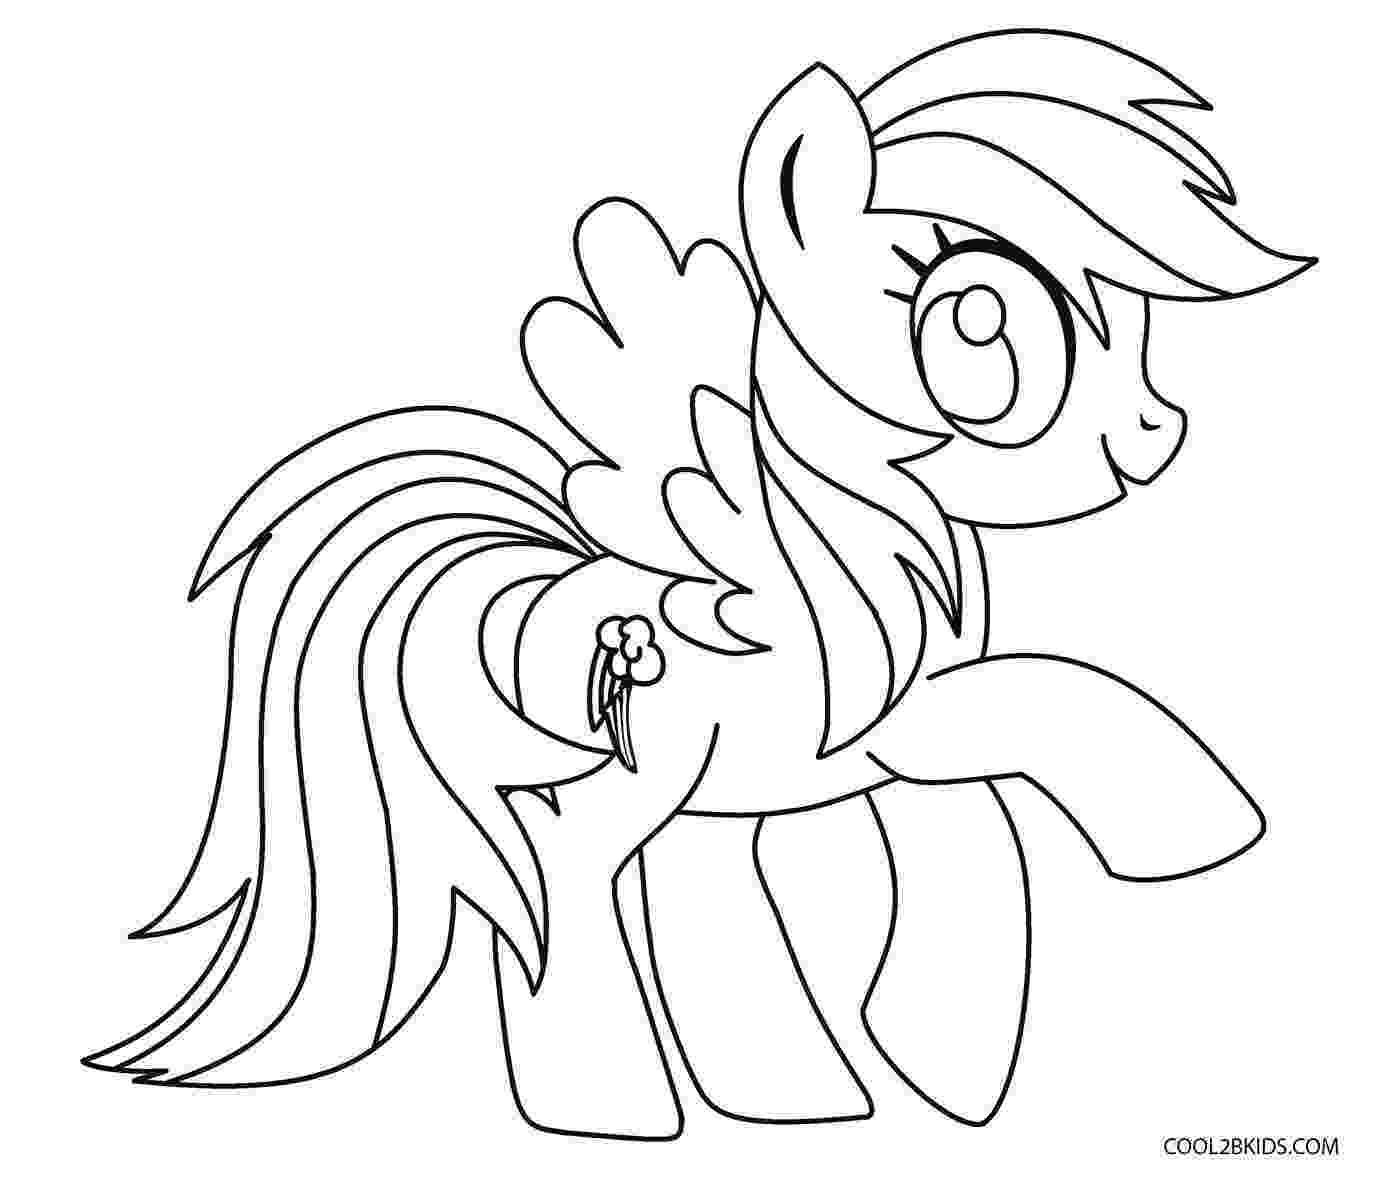 rainbow dash color page free printable my little pony coloring pages for kids page rainbow dash color